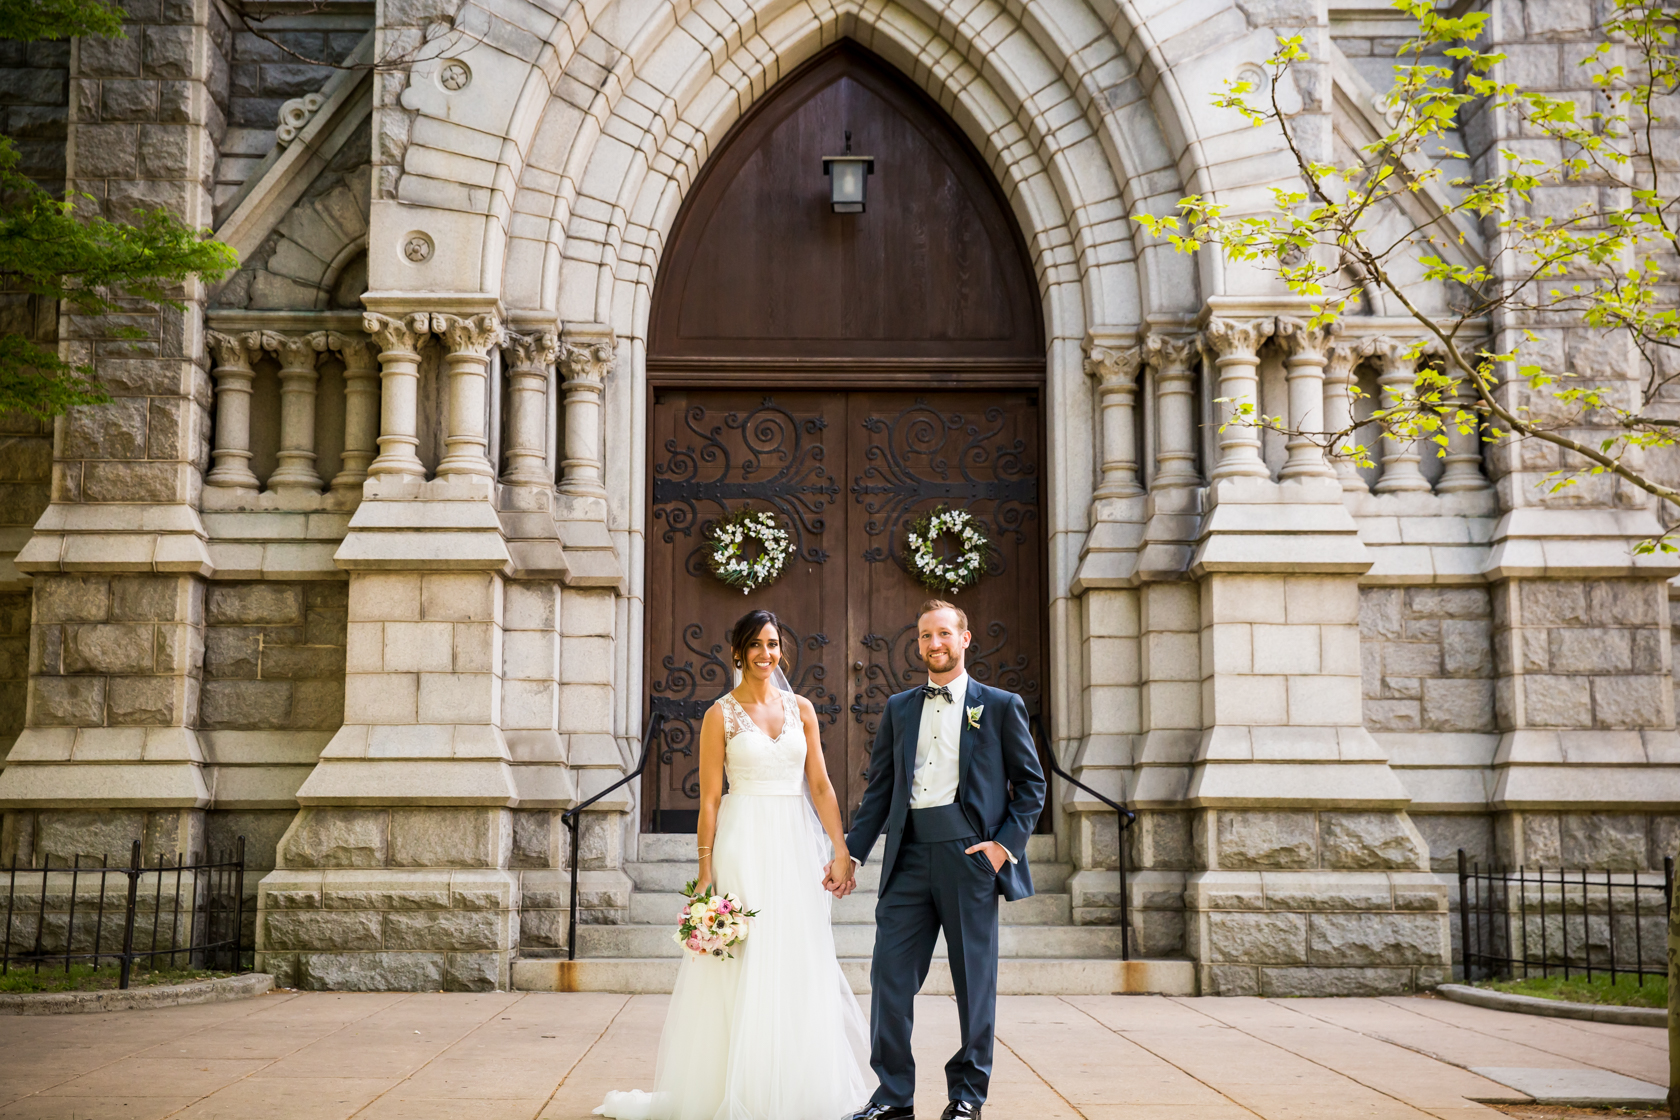 KELLIE + JOE - I know that my wedding experience and actual wedding day would not have been the same without Caitlin and her team.Caitlin and her girls have such a calming and fun energy, they get the job done without you even realizing it!Caitlin is detailed oriented, has a serious eye for style and design, is so personable, and above all, she knows her brides and their vision. At the end of my reception, the first people I sought out to toast with were Caitlin and her team.The only thing I would have changed would be getting in touch with Caitlin the day I got engaged. She makes you realize that weddings are supposed to be enjoyed and stress free, and with Clover, that's exactly how the day turns out.